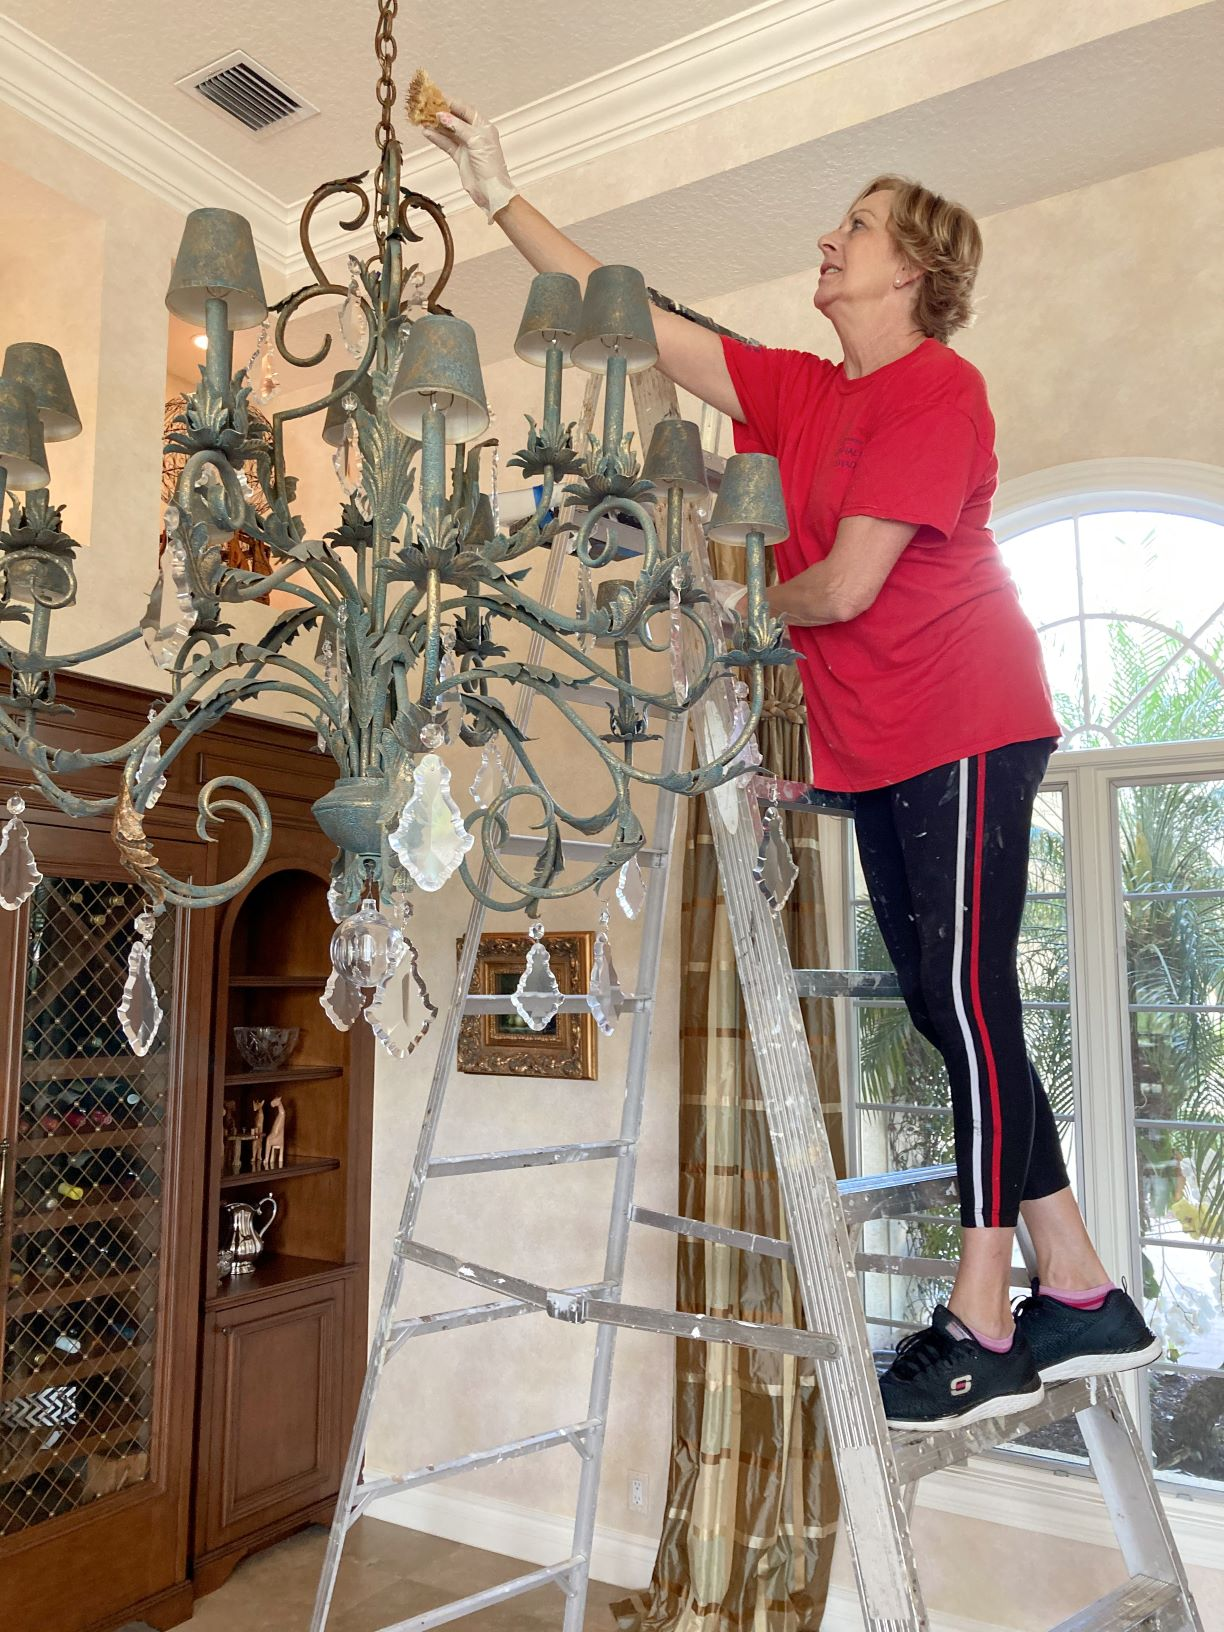 Hanging a chandelier